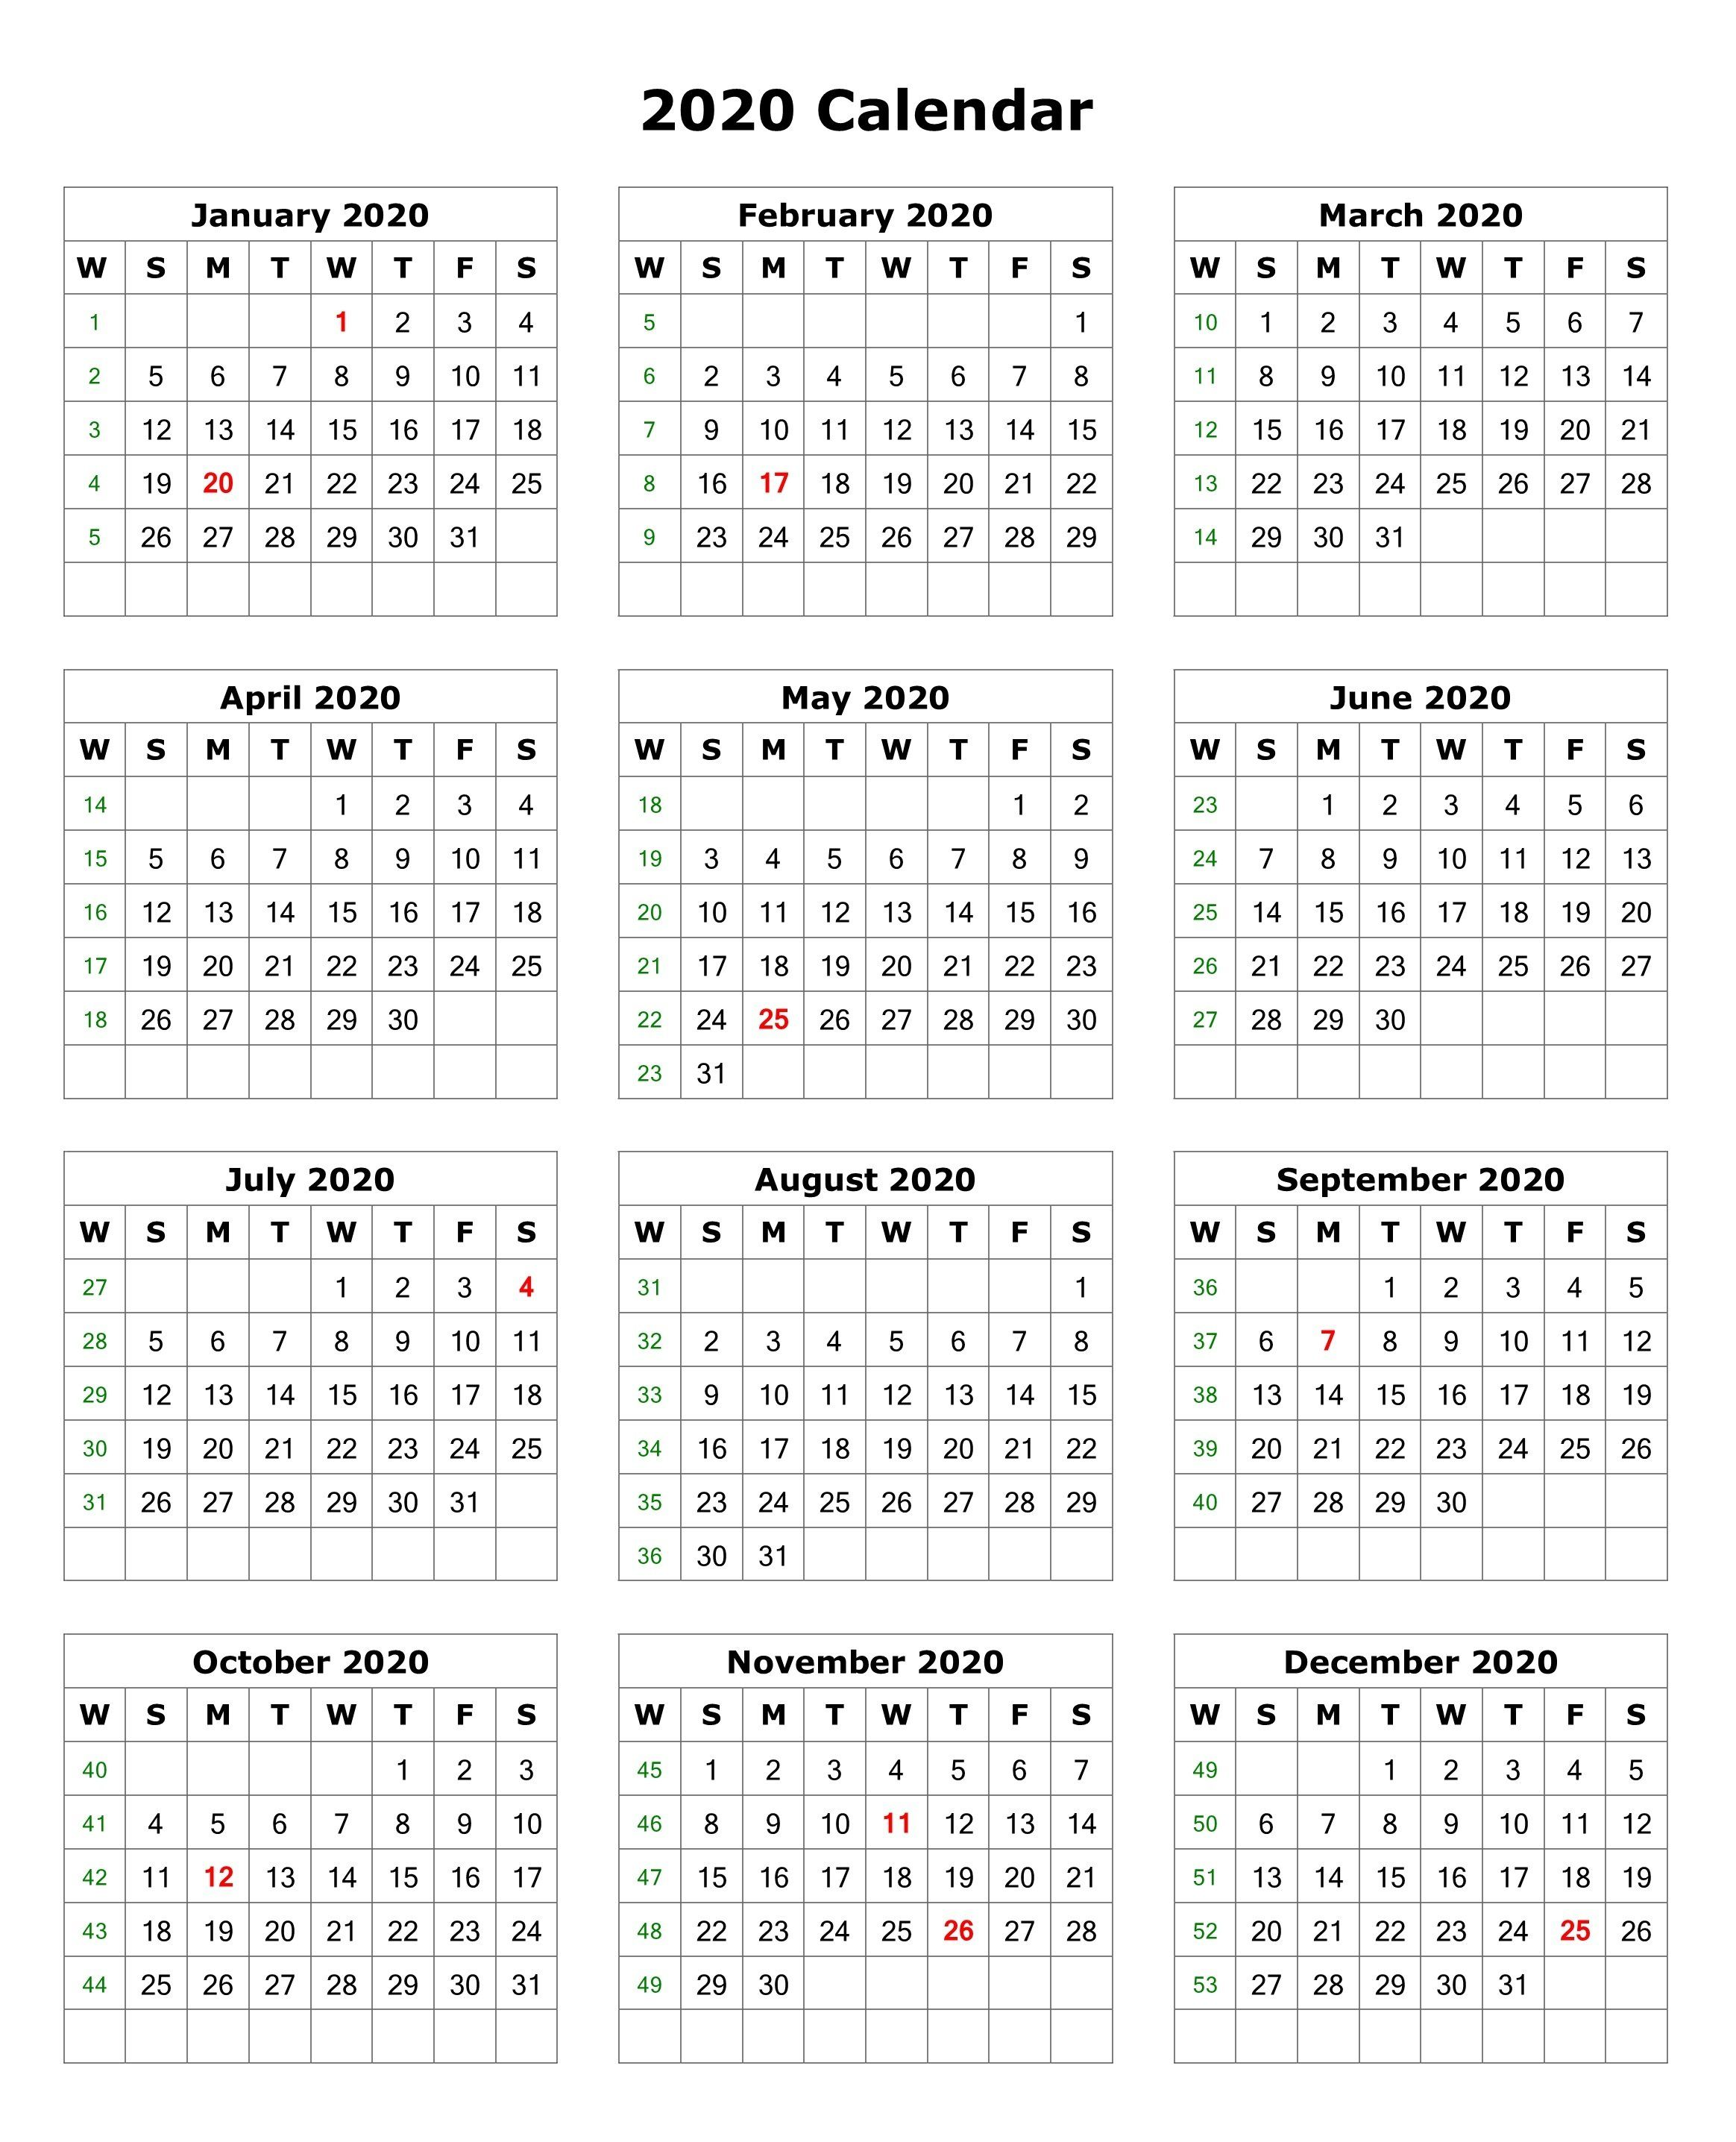 Printable 2020 Calendar One Page.2020 One Page Portrait Calendar Printable Calendar 2020